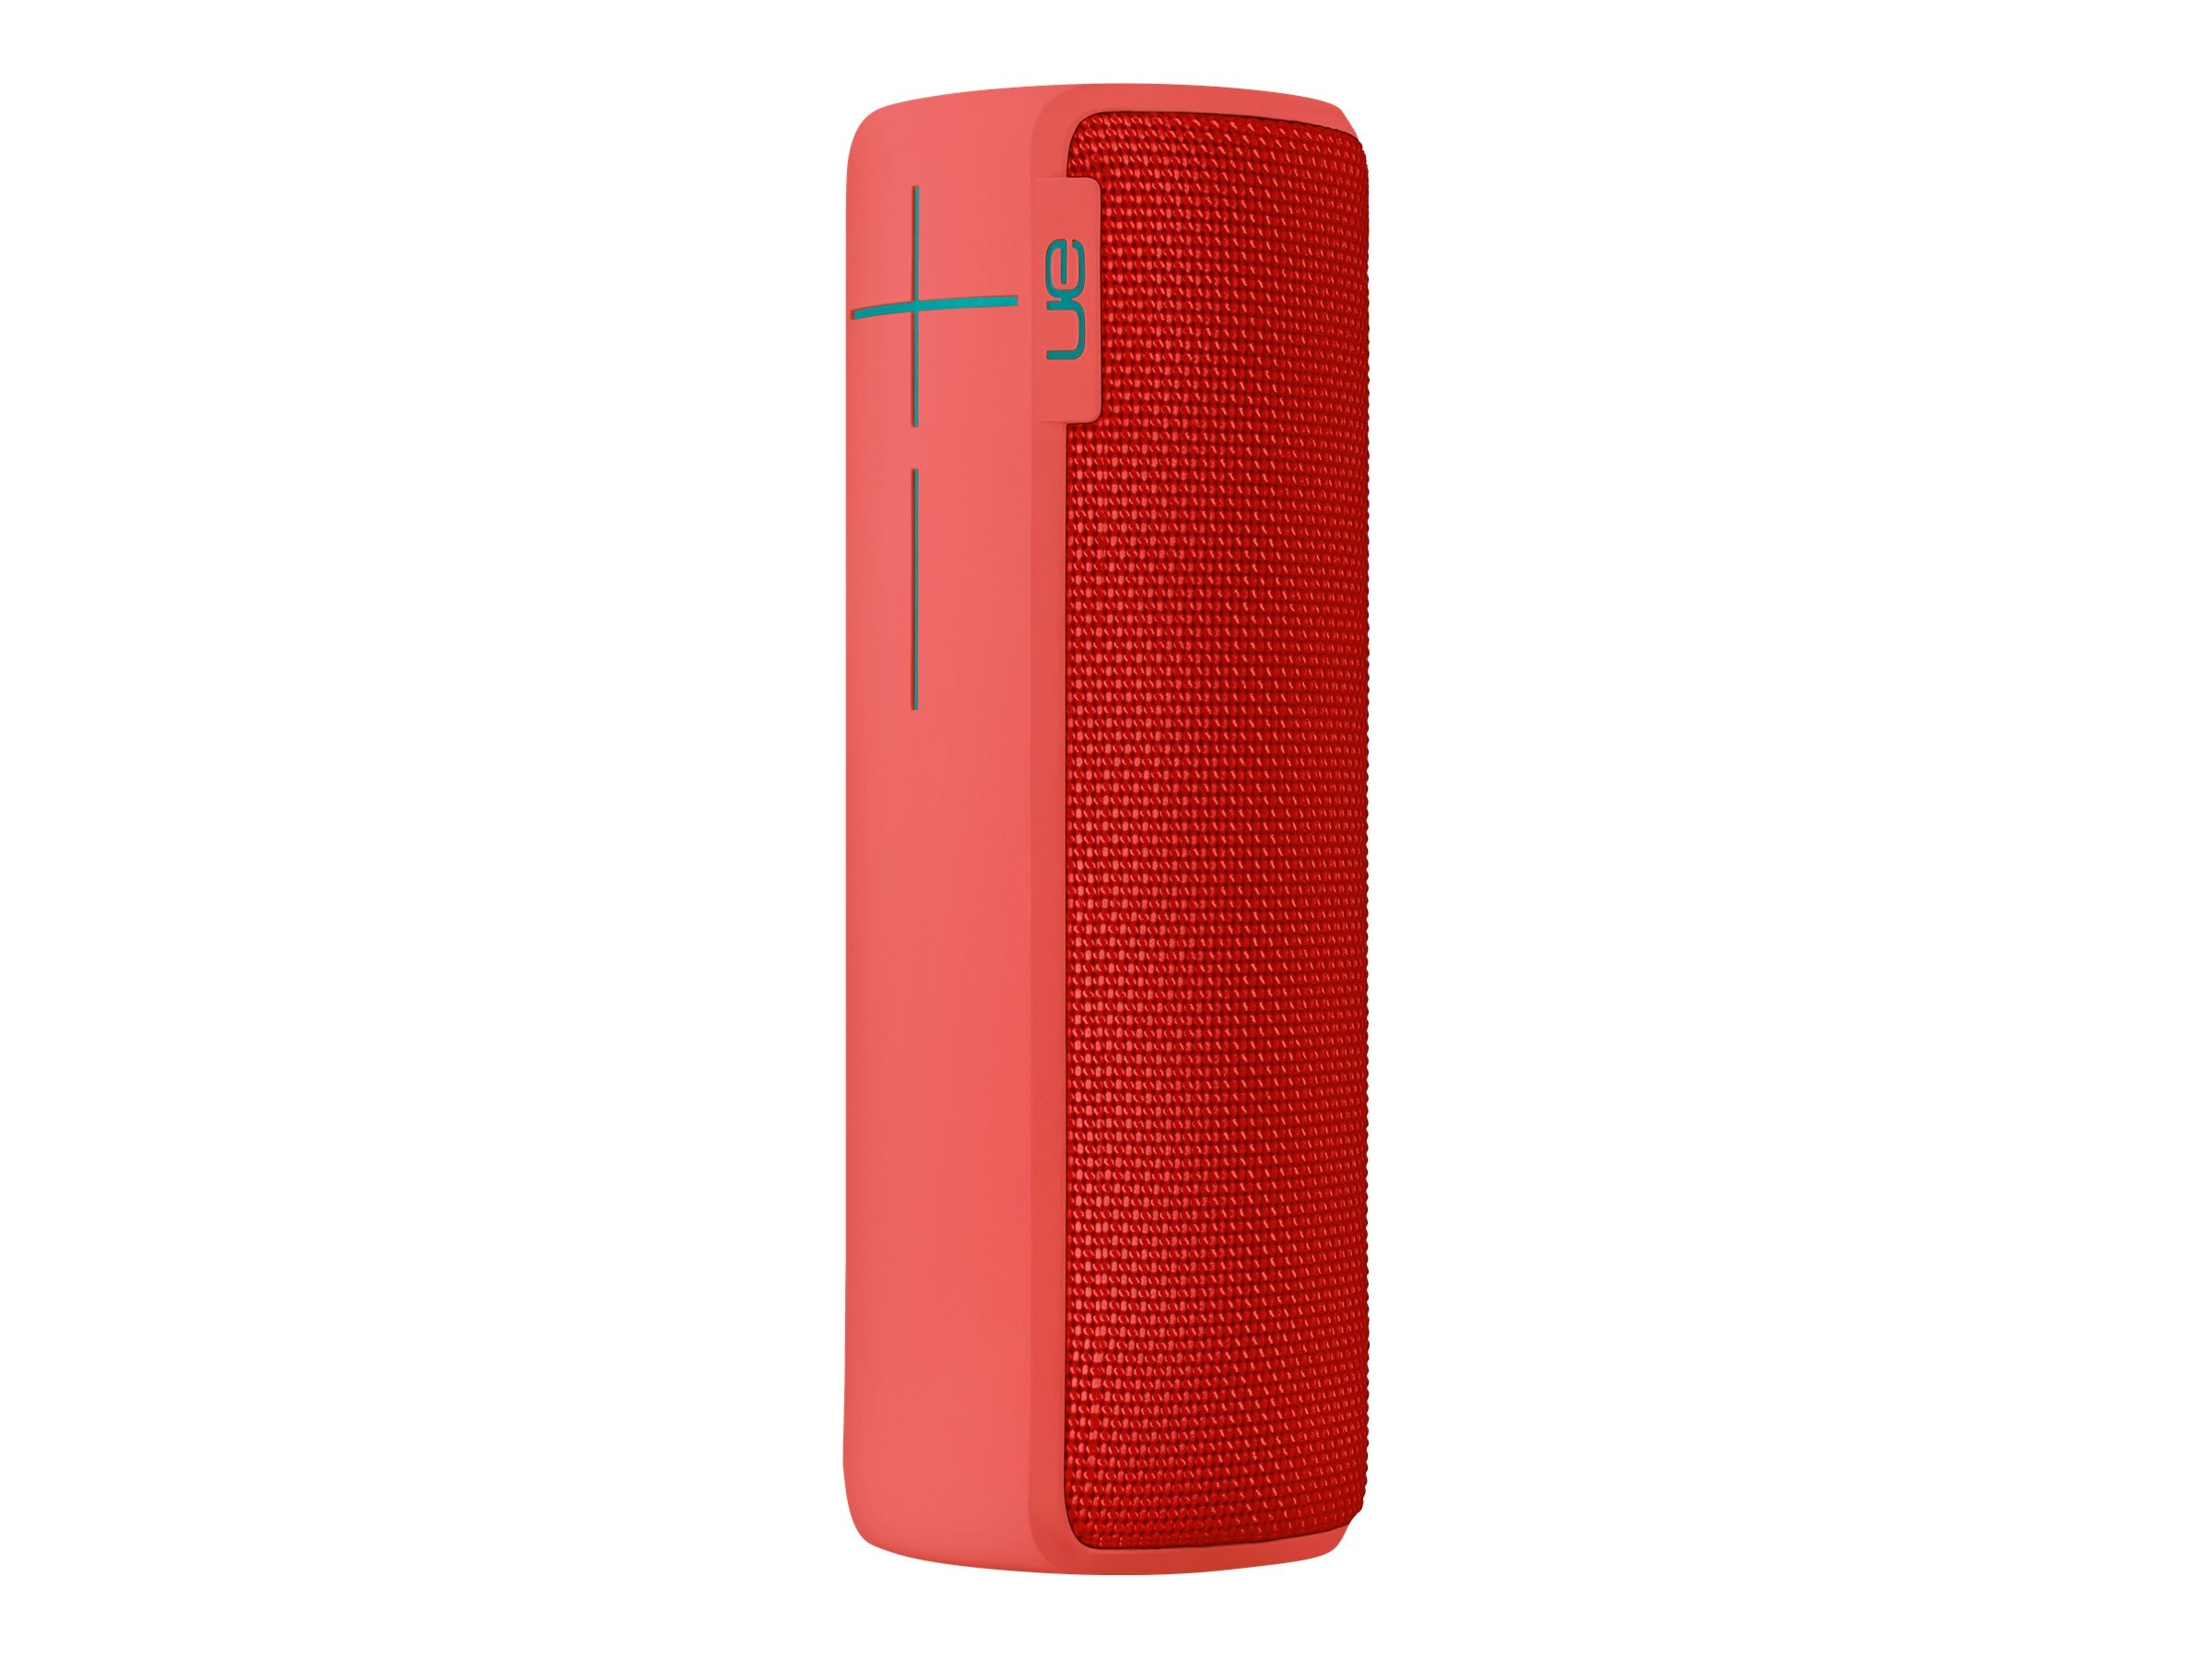 Logitech UE Boom 2 Wireless Speaker, CherryBomb